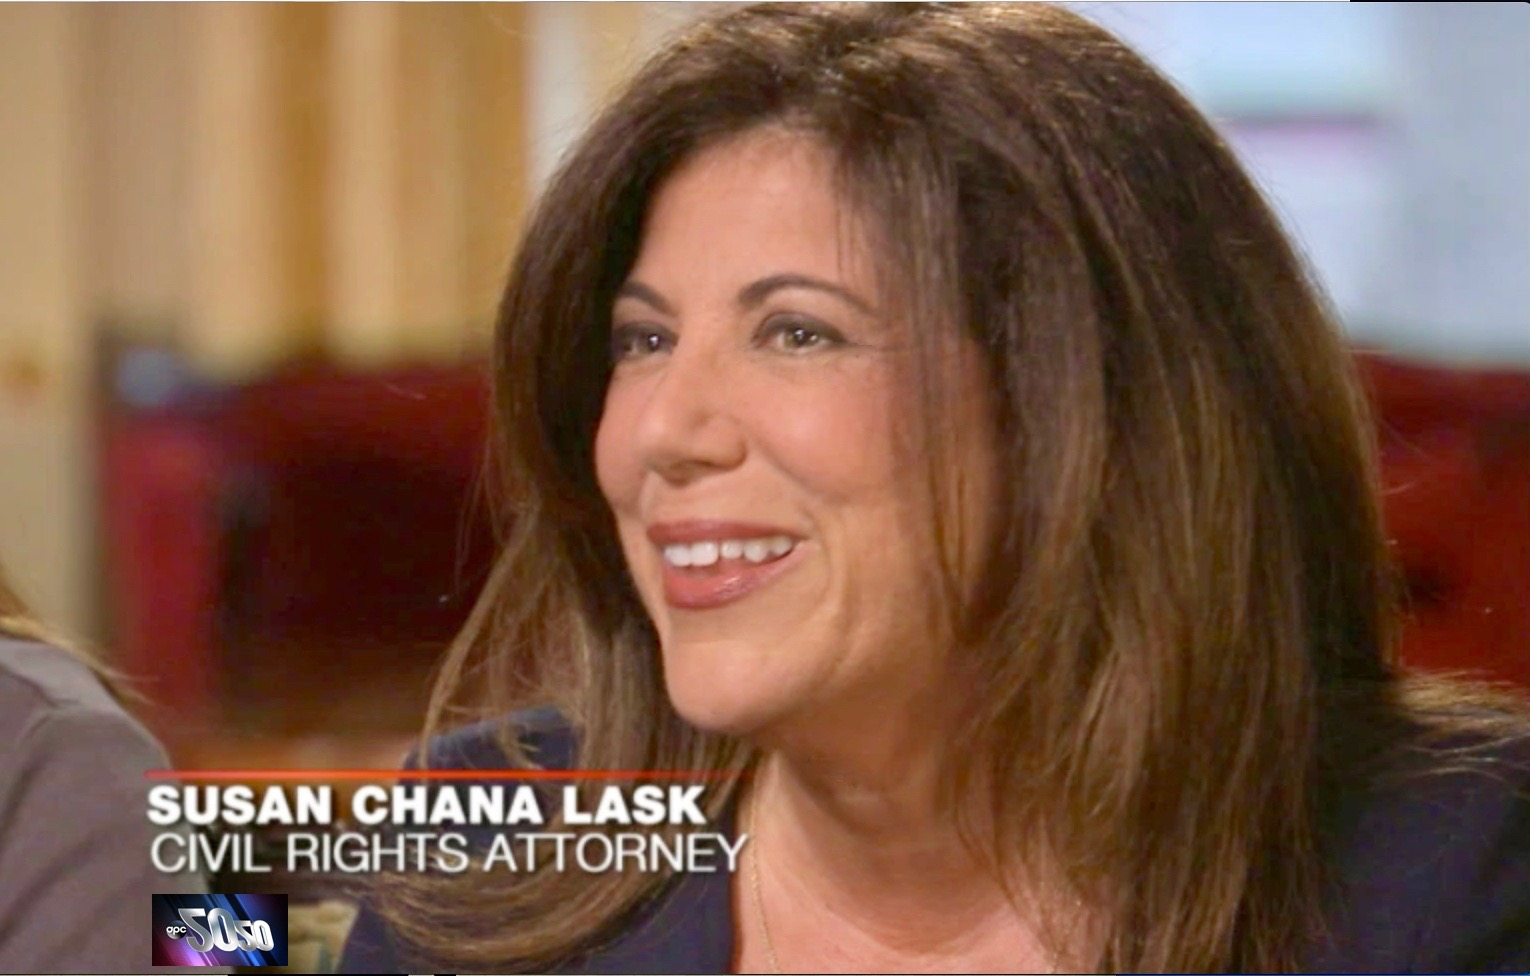 New York Lawyer Susan Chana Lask on ABC News for High Profile Civil Rights Case